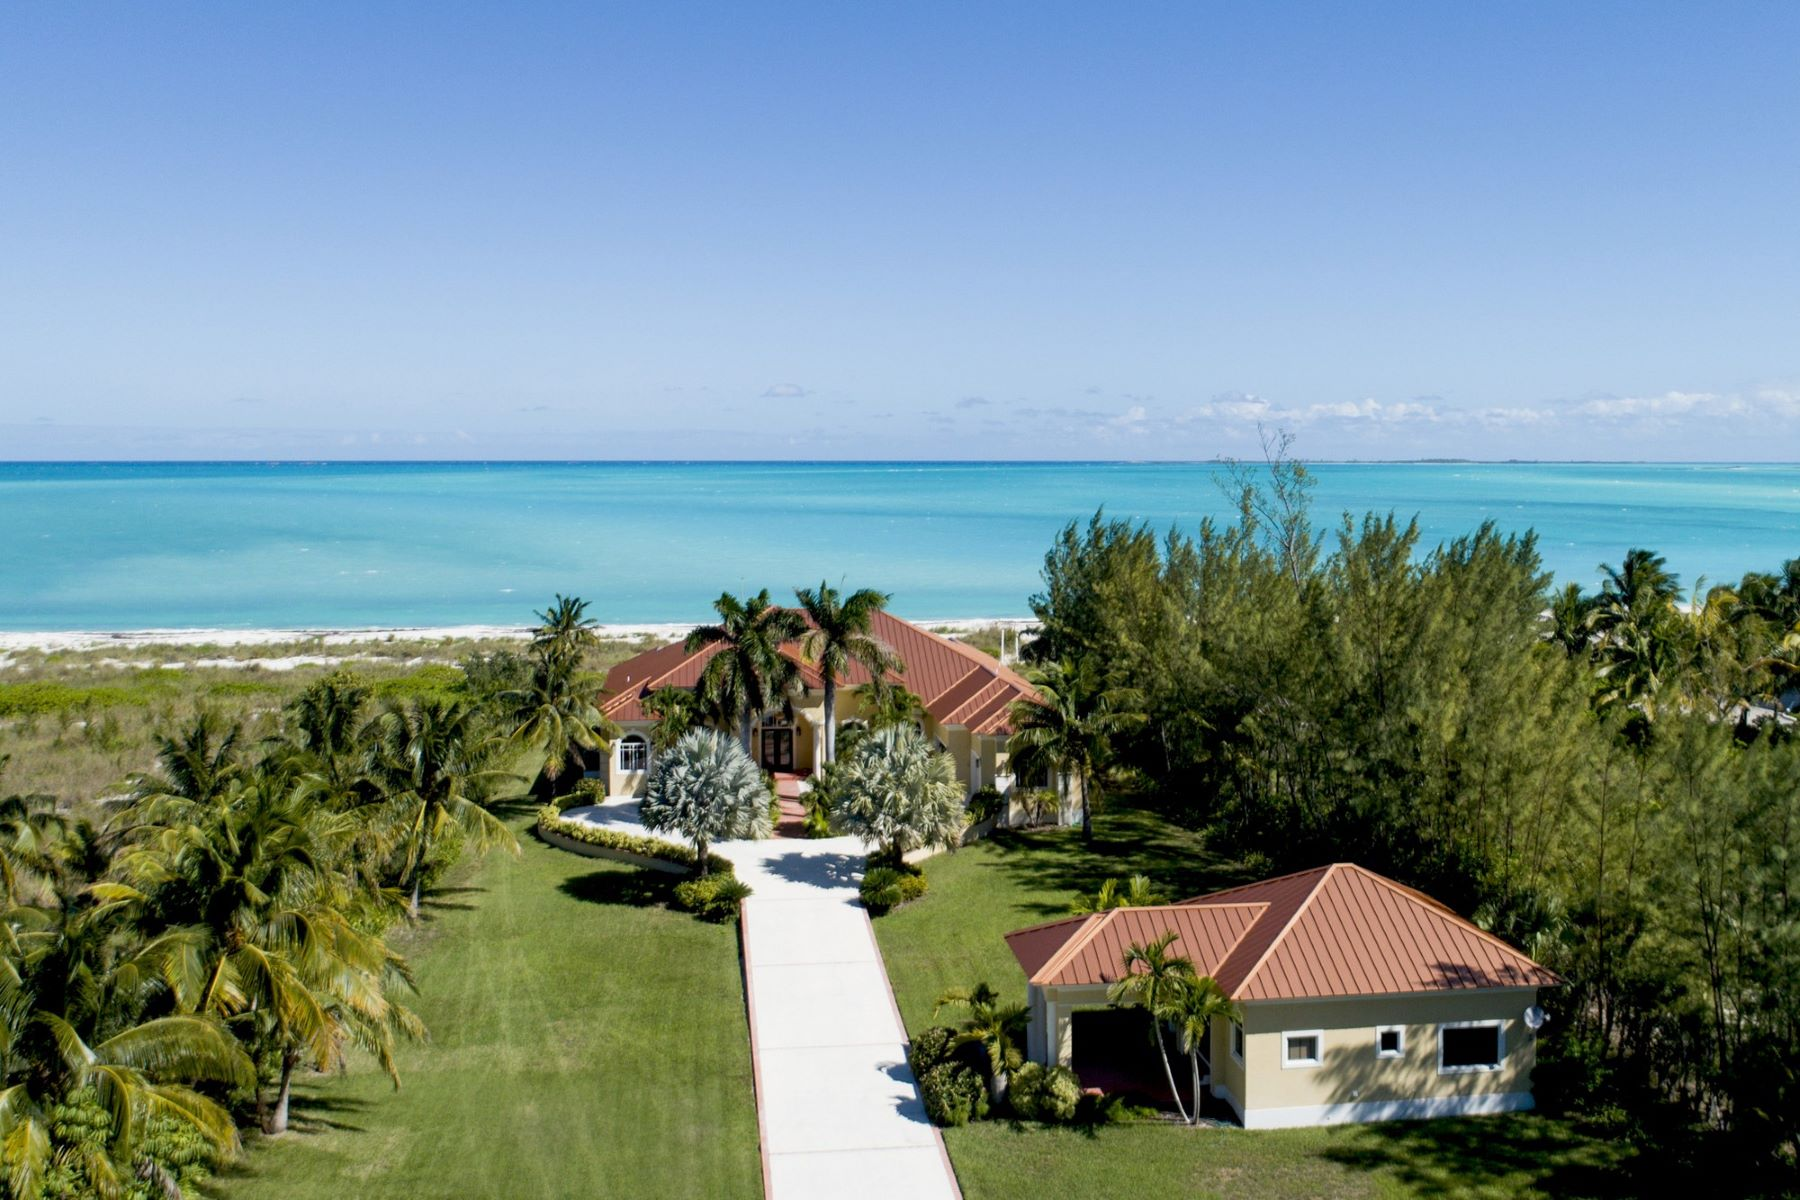 Land for Sale at Camelot Treasure Cay, Abaco Bahamas